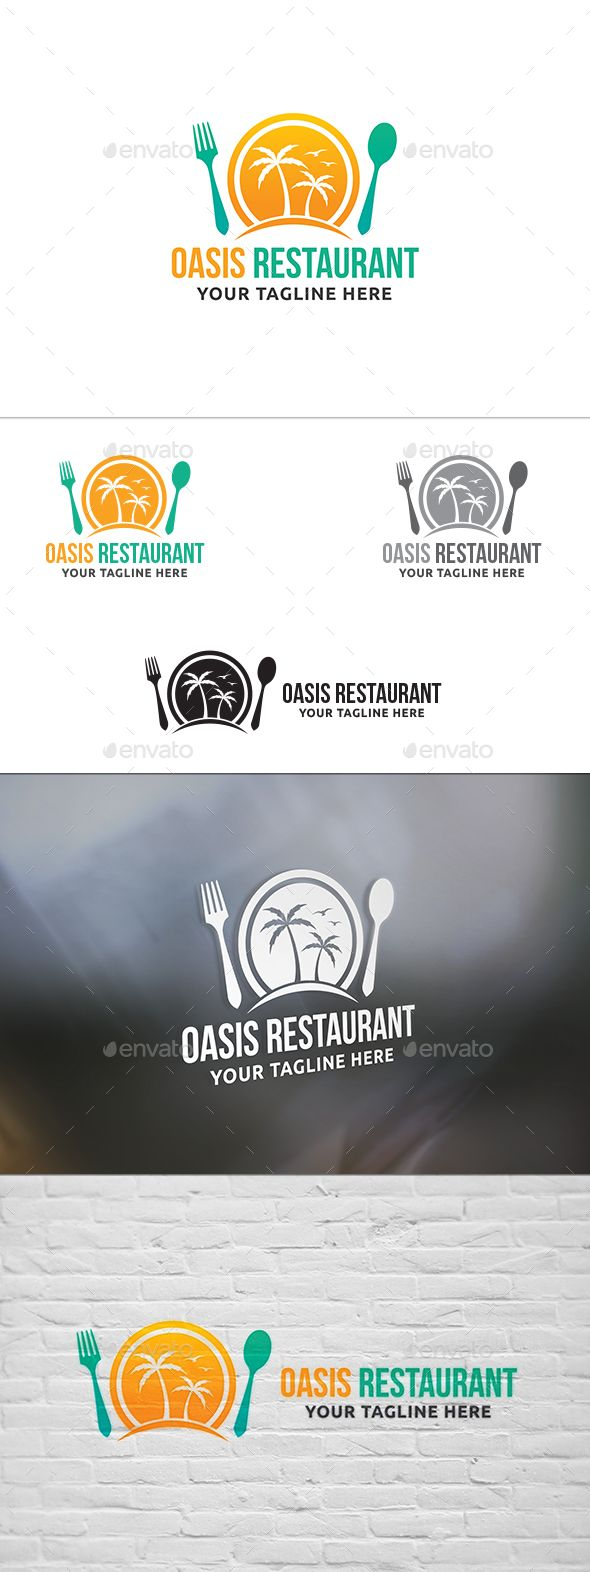 Oasis Restaurant Logo — Vector EPS #arabic food #oasis logo • Available here → https://graphicriver.net/item/oasis-restaurant-logo/14026501?ref=pxcr